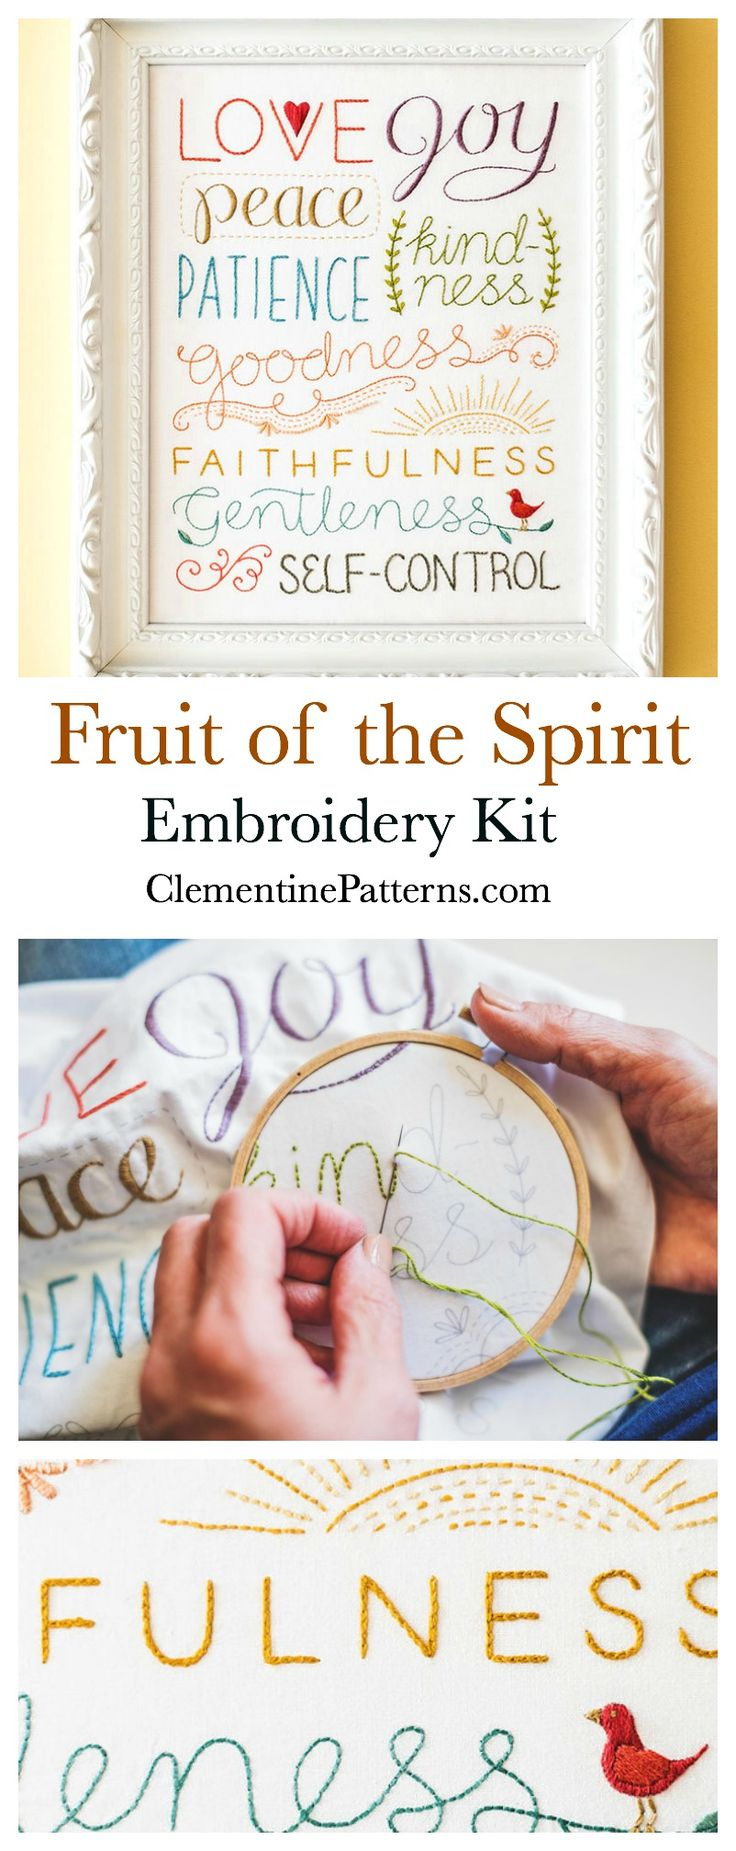 Fruit of the Spirit Embroidery Kit - contains all you need to complete embroidery. Pre-printed pattern on cotton, threads, instruction sheet, stitch guide, hoop, needle, and needle book. Modern embroidery. Sewing kits. Embroidery patterns. Embroidery kits. Clementine Patterns